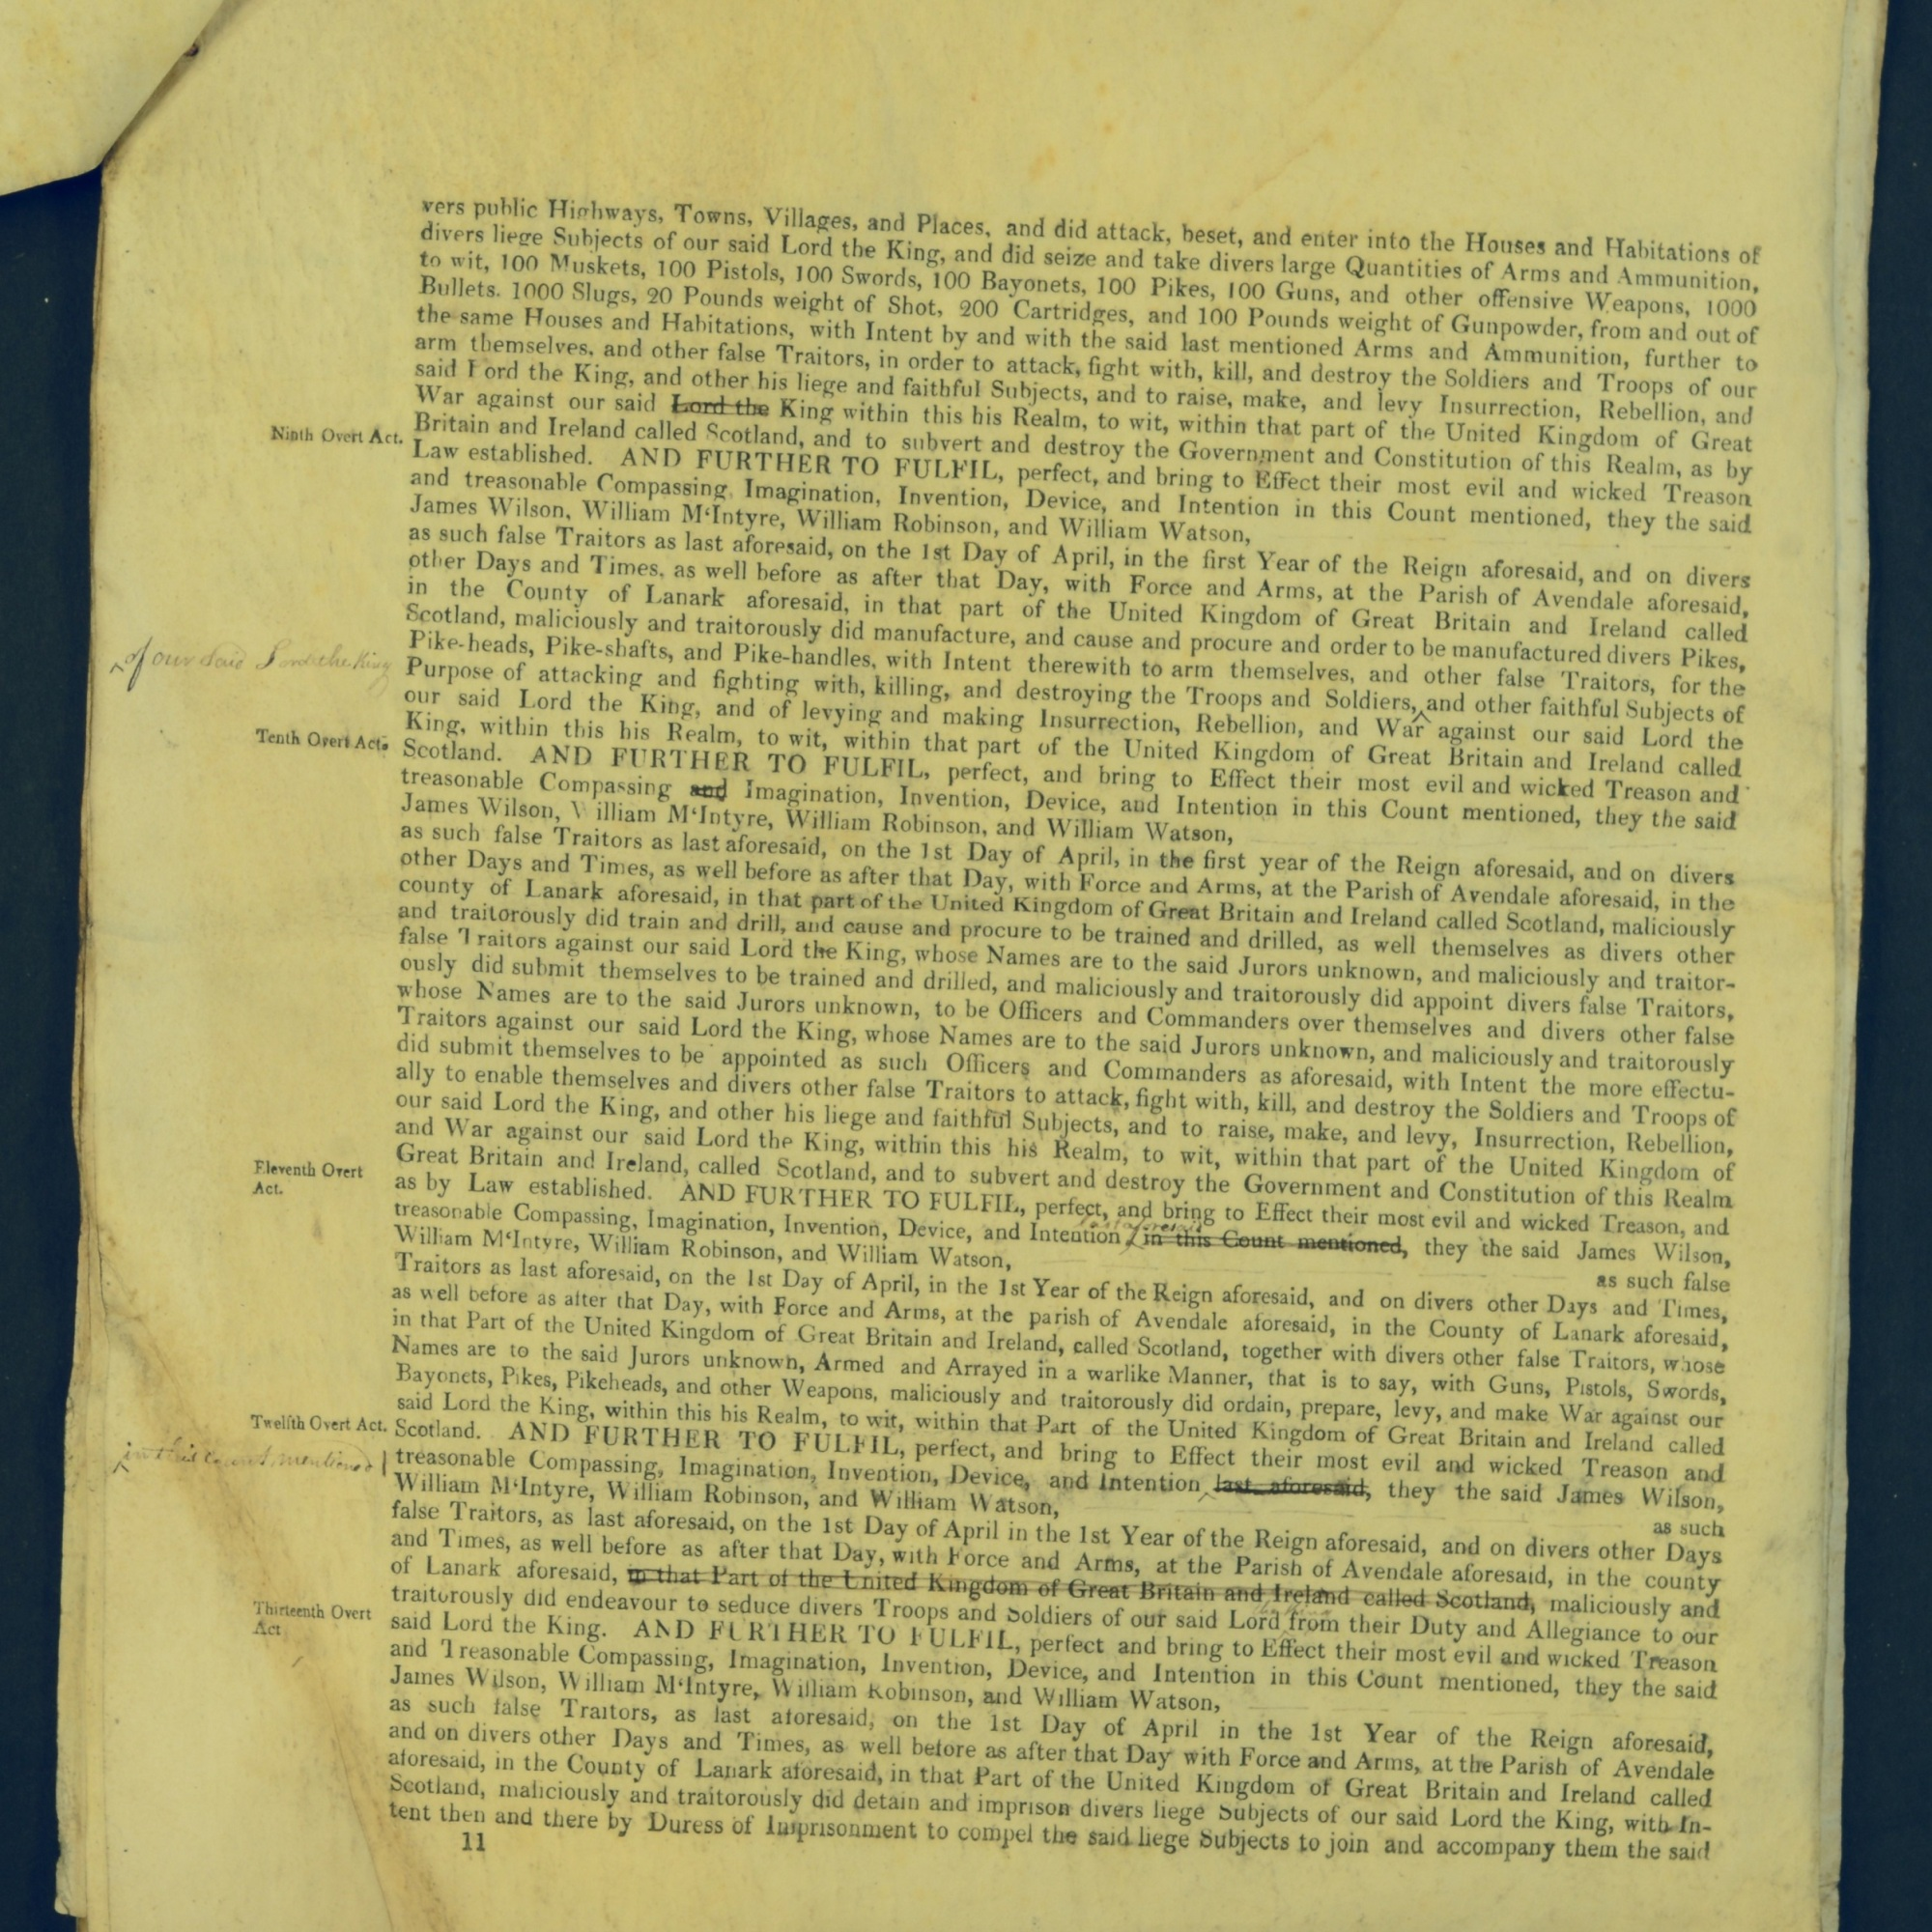 Treason Trials for the County of Lanark, the Strathaven Case. True bills found against four men, James Wilson, William McIntyre, William Robinson and William Watson. National Records of Scotland, Crown copyright, JC21/3/4 p11